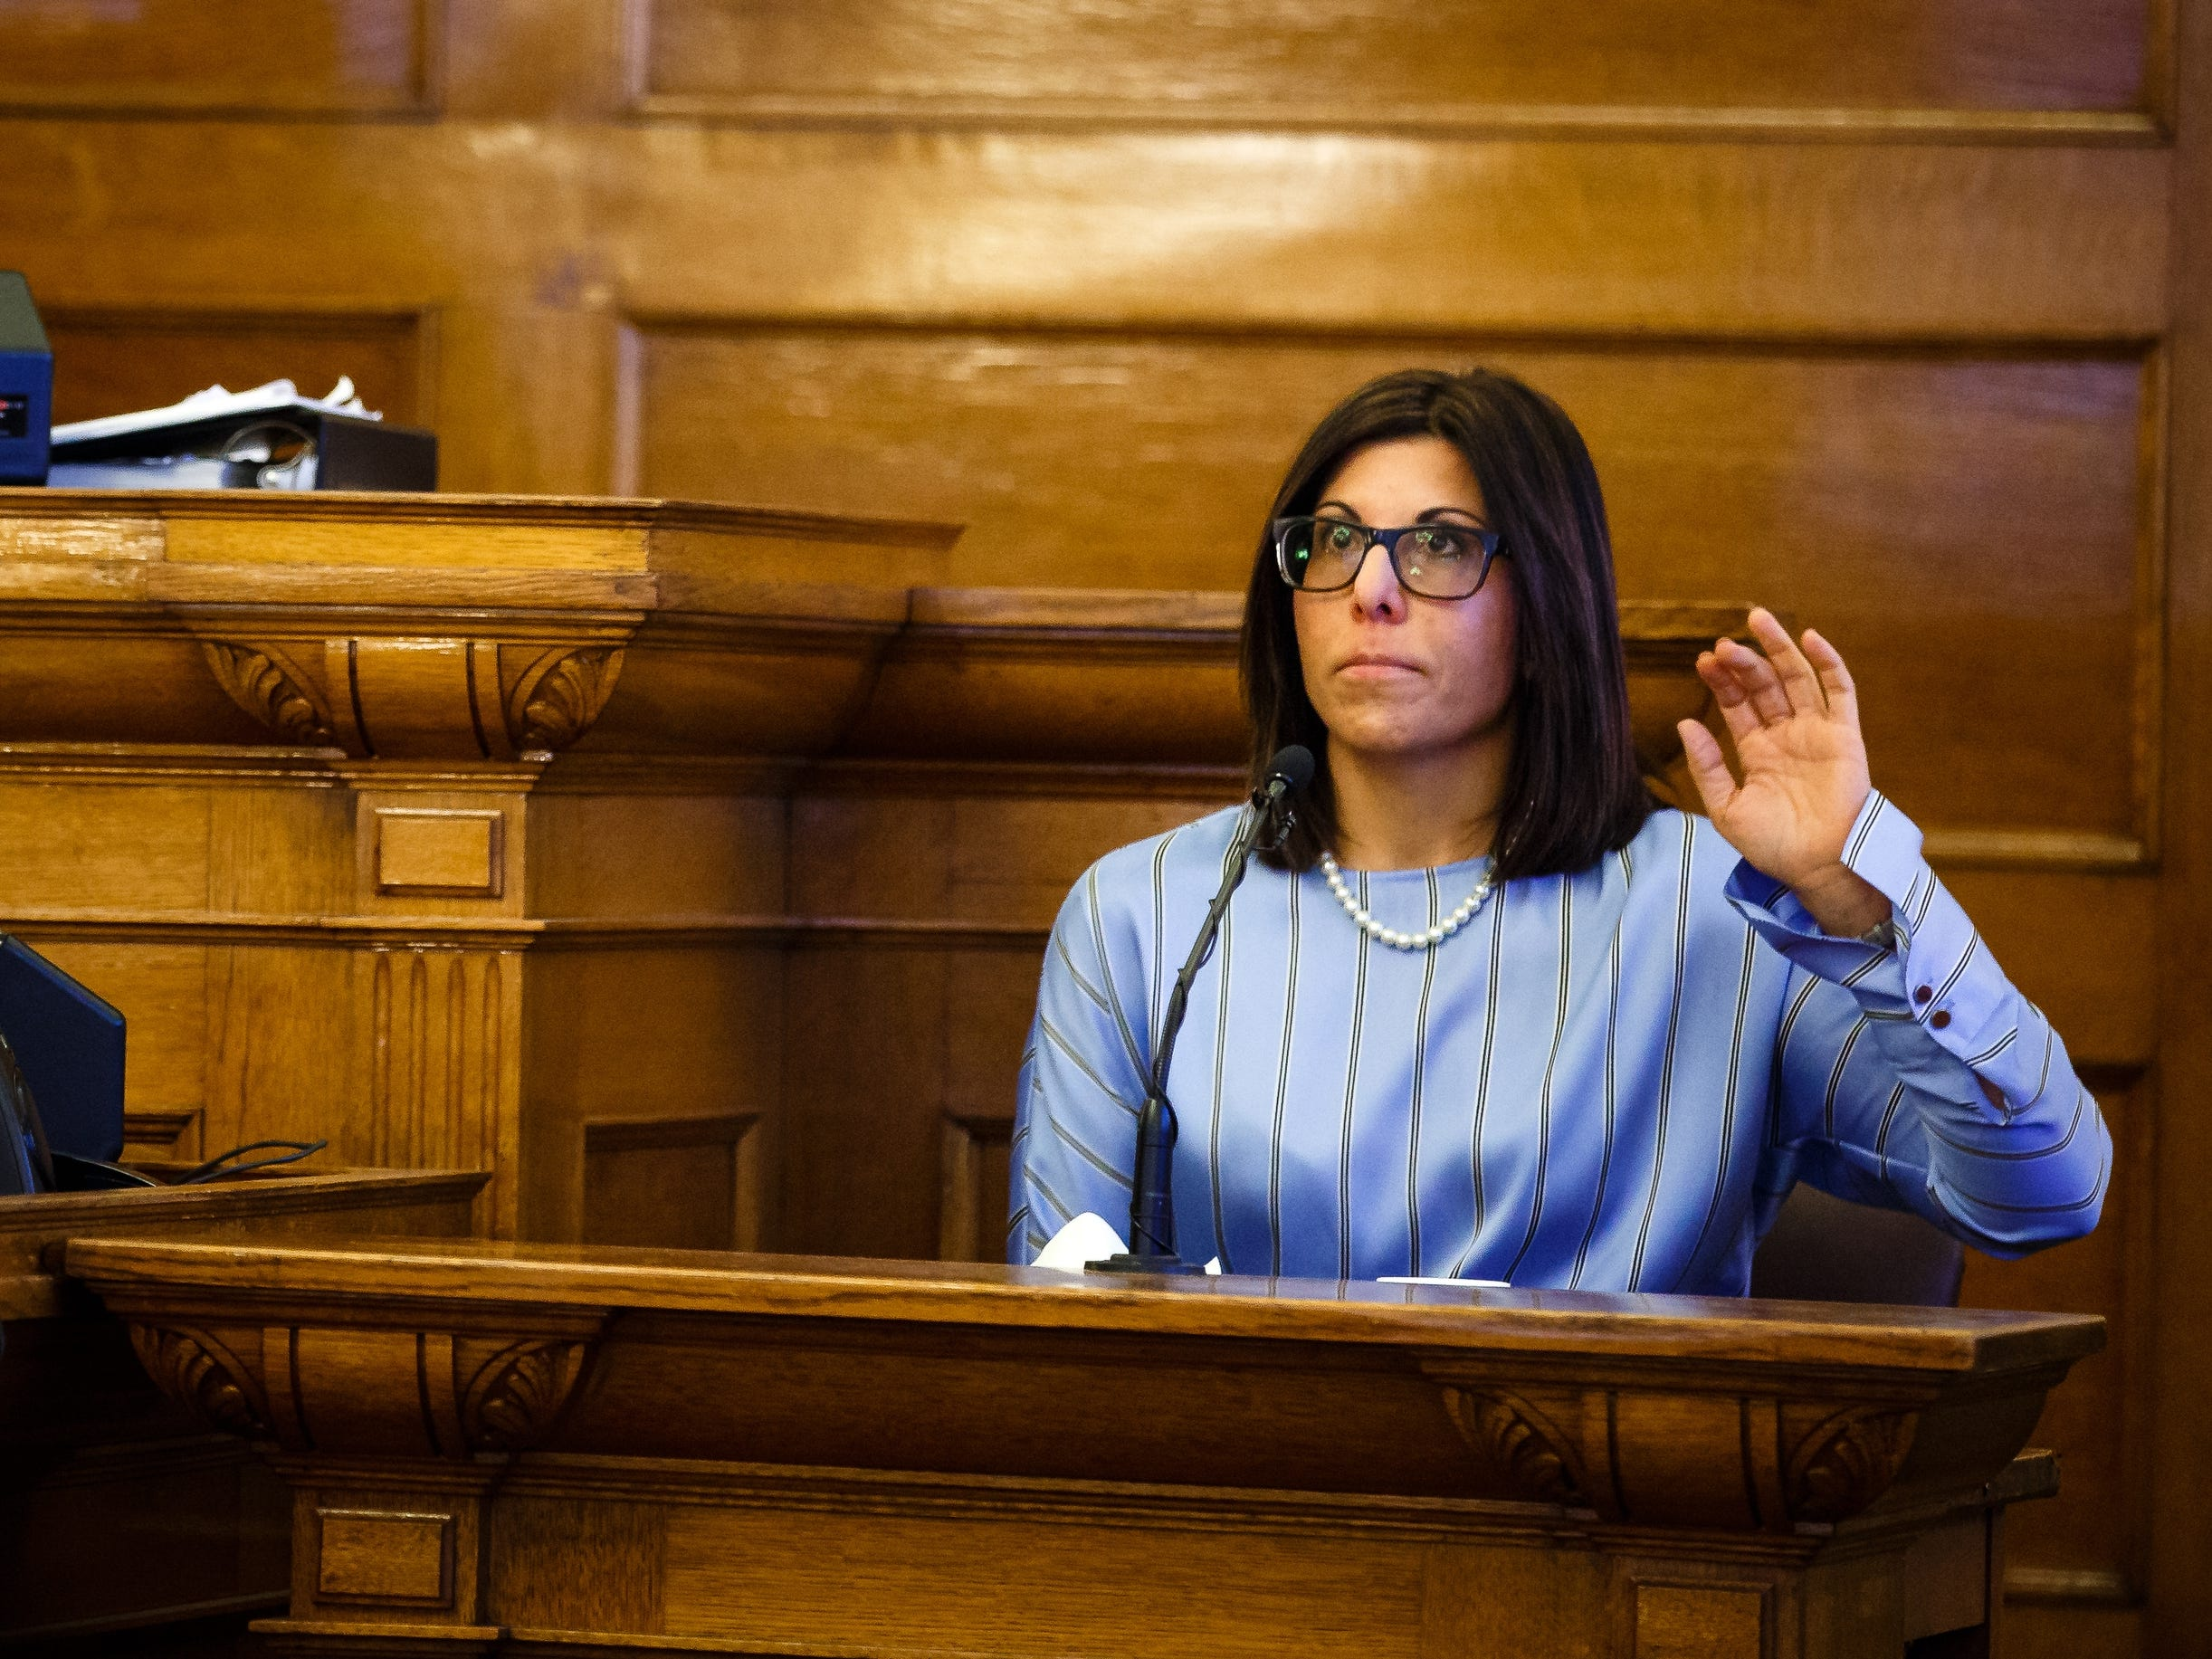 Gina Battani prepares to give testimony against her ex-husband Troy Griffin, who she accused of rape, at the Dallas County Courthouse on Tuesday, Oct. 23, 2018, in Adel. The Dallas County jury found Griffin not guilty on all counts.